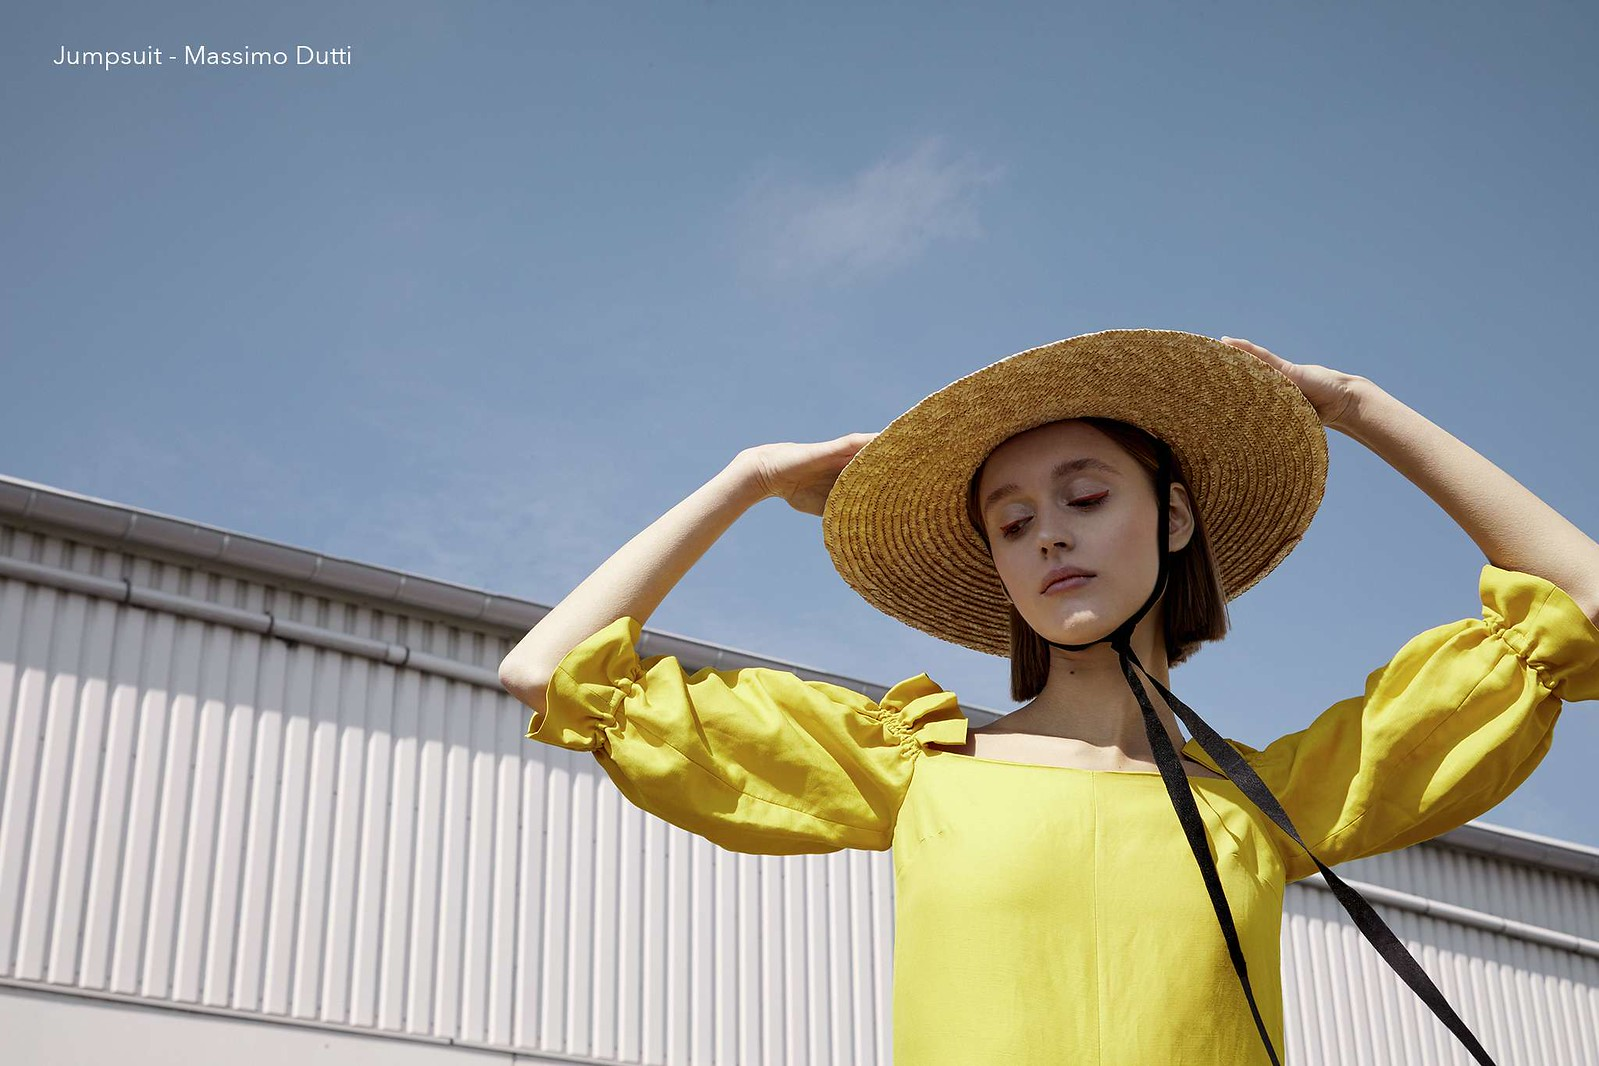 DISTRICT F — FLANELLE MAGAZINE WEBITORIAL